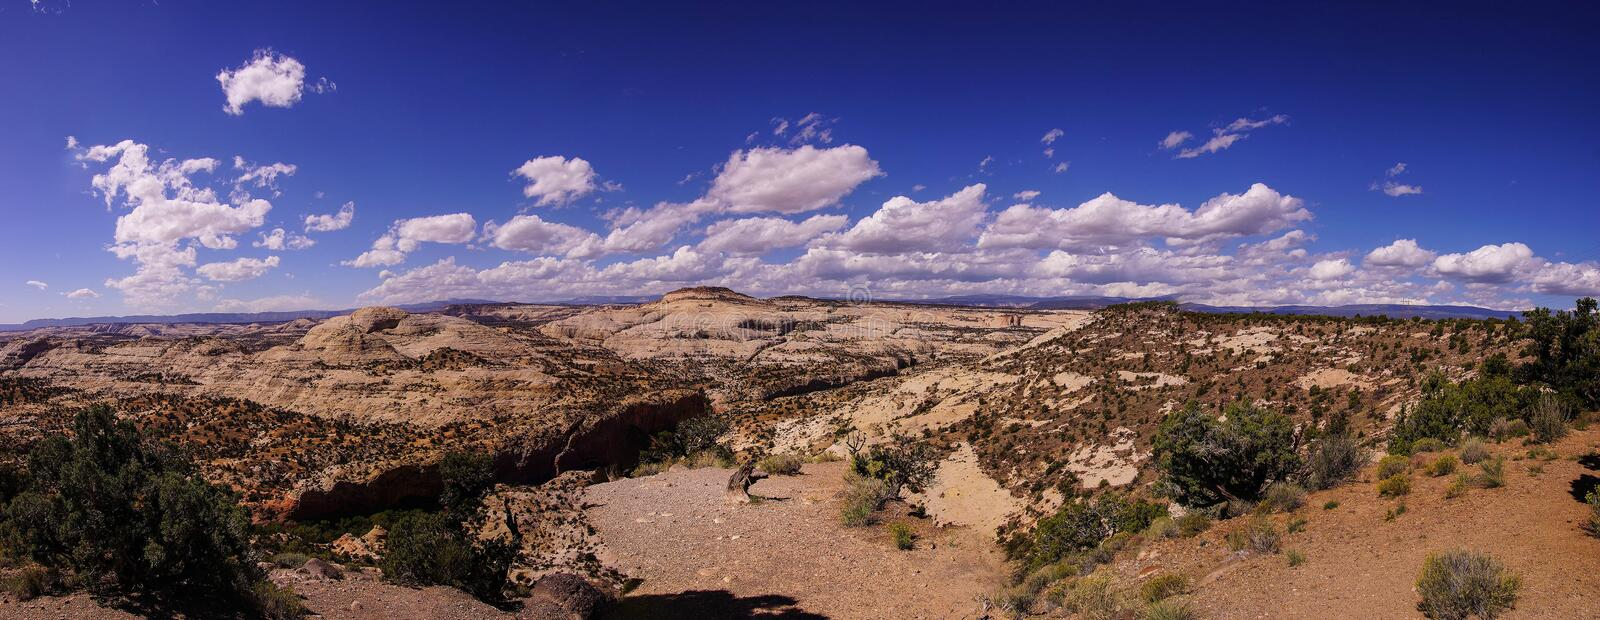 Panorama, badlands royalty free stock photography